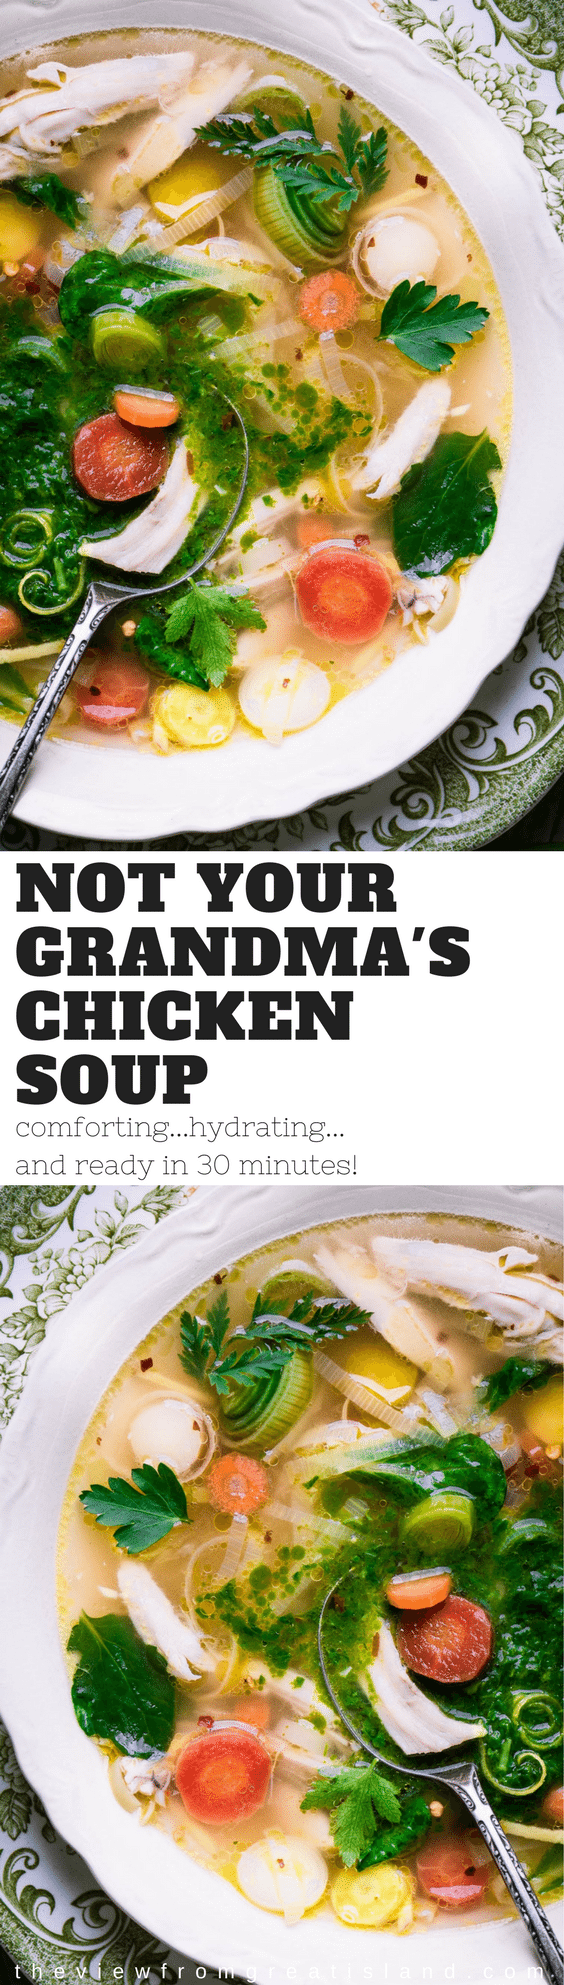 It's definitely not your grandma's chicken soup ~ for one thing, this vibrant soup won't be simmering on the stove all day, it's ready in 30 minutes. #soup #chickensoup #quickchickensoup #chickensouprecipe #flufighter #flubuster #vegetablesoup #Swanson #chickenbroth #bonebroth